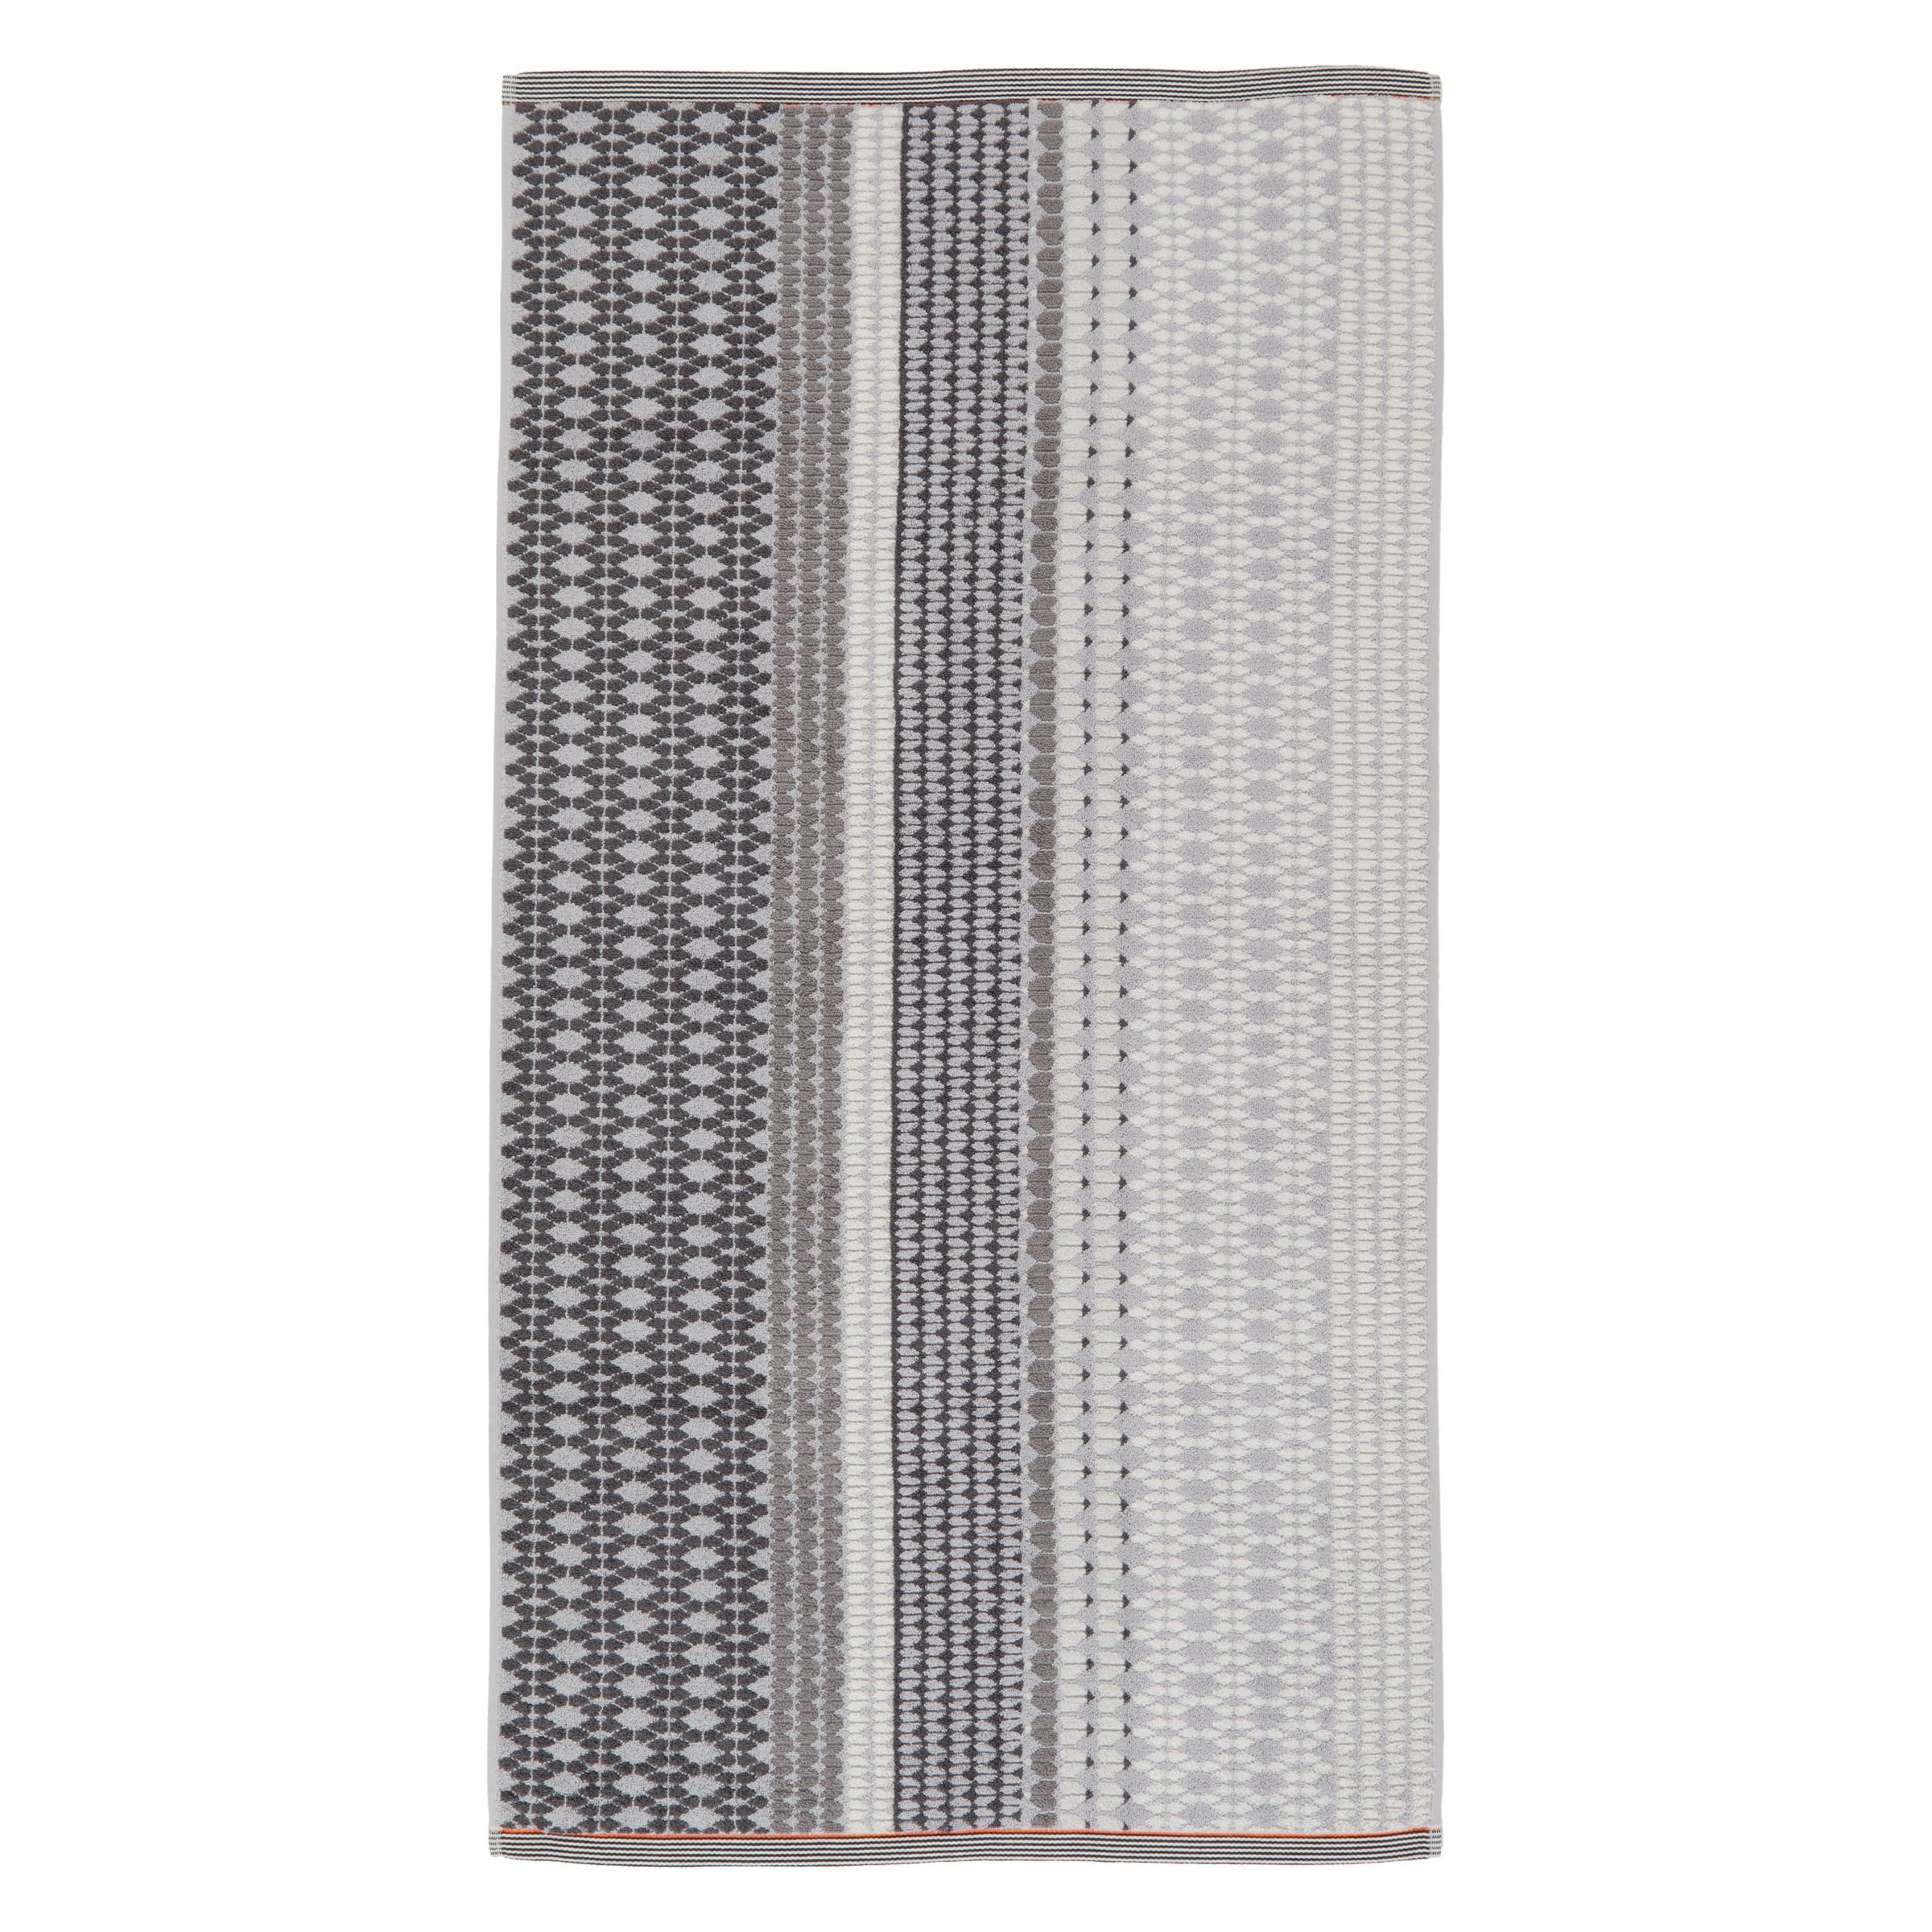 Margo Selby Margo Selby Tierney Towels, Grey